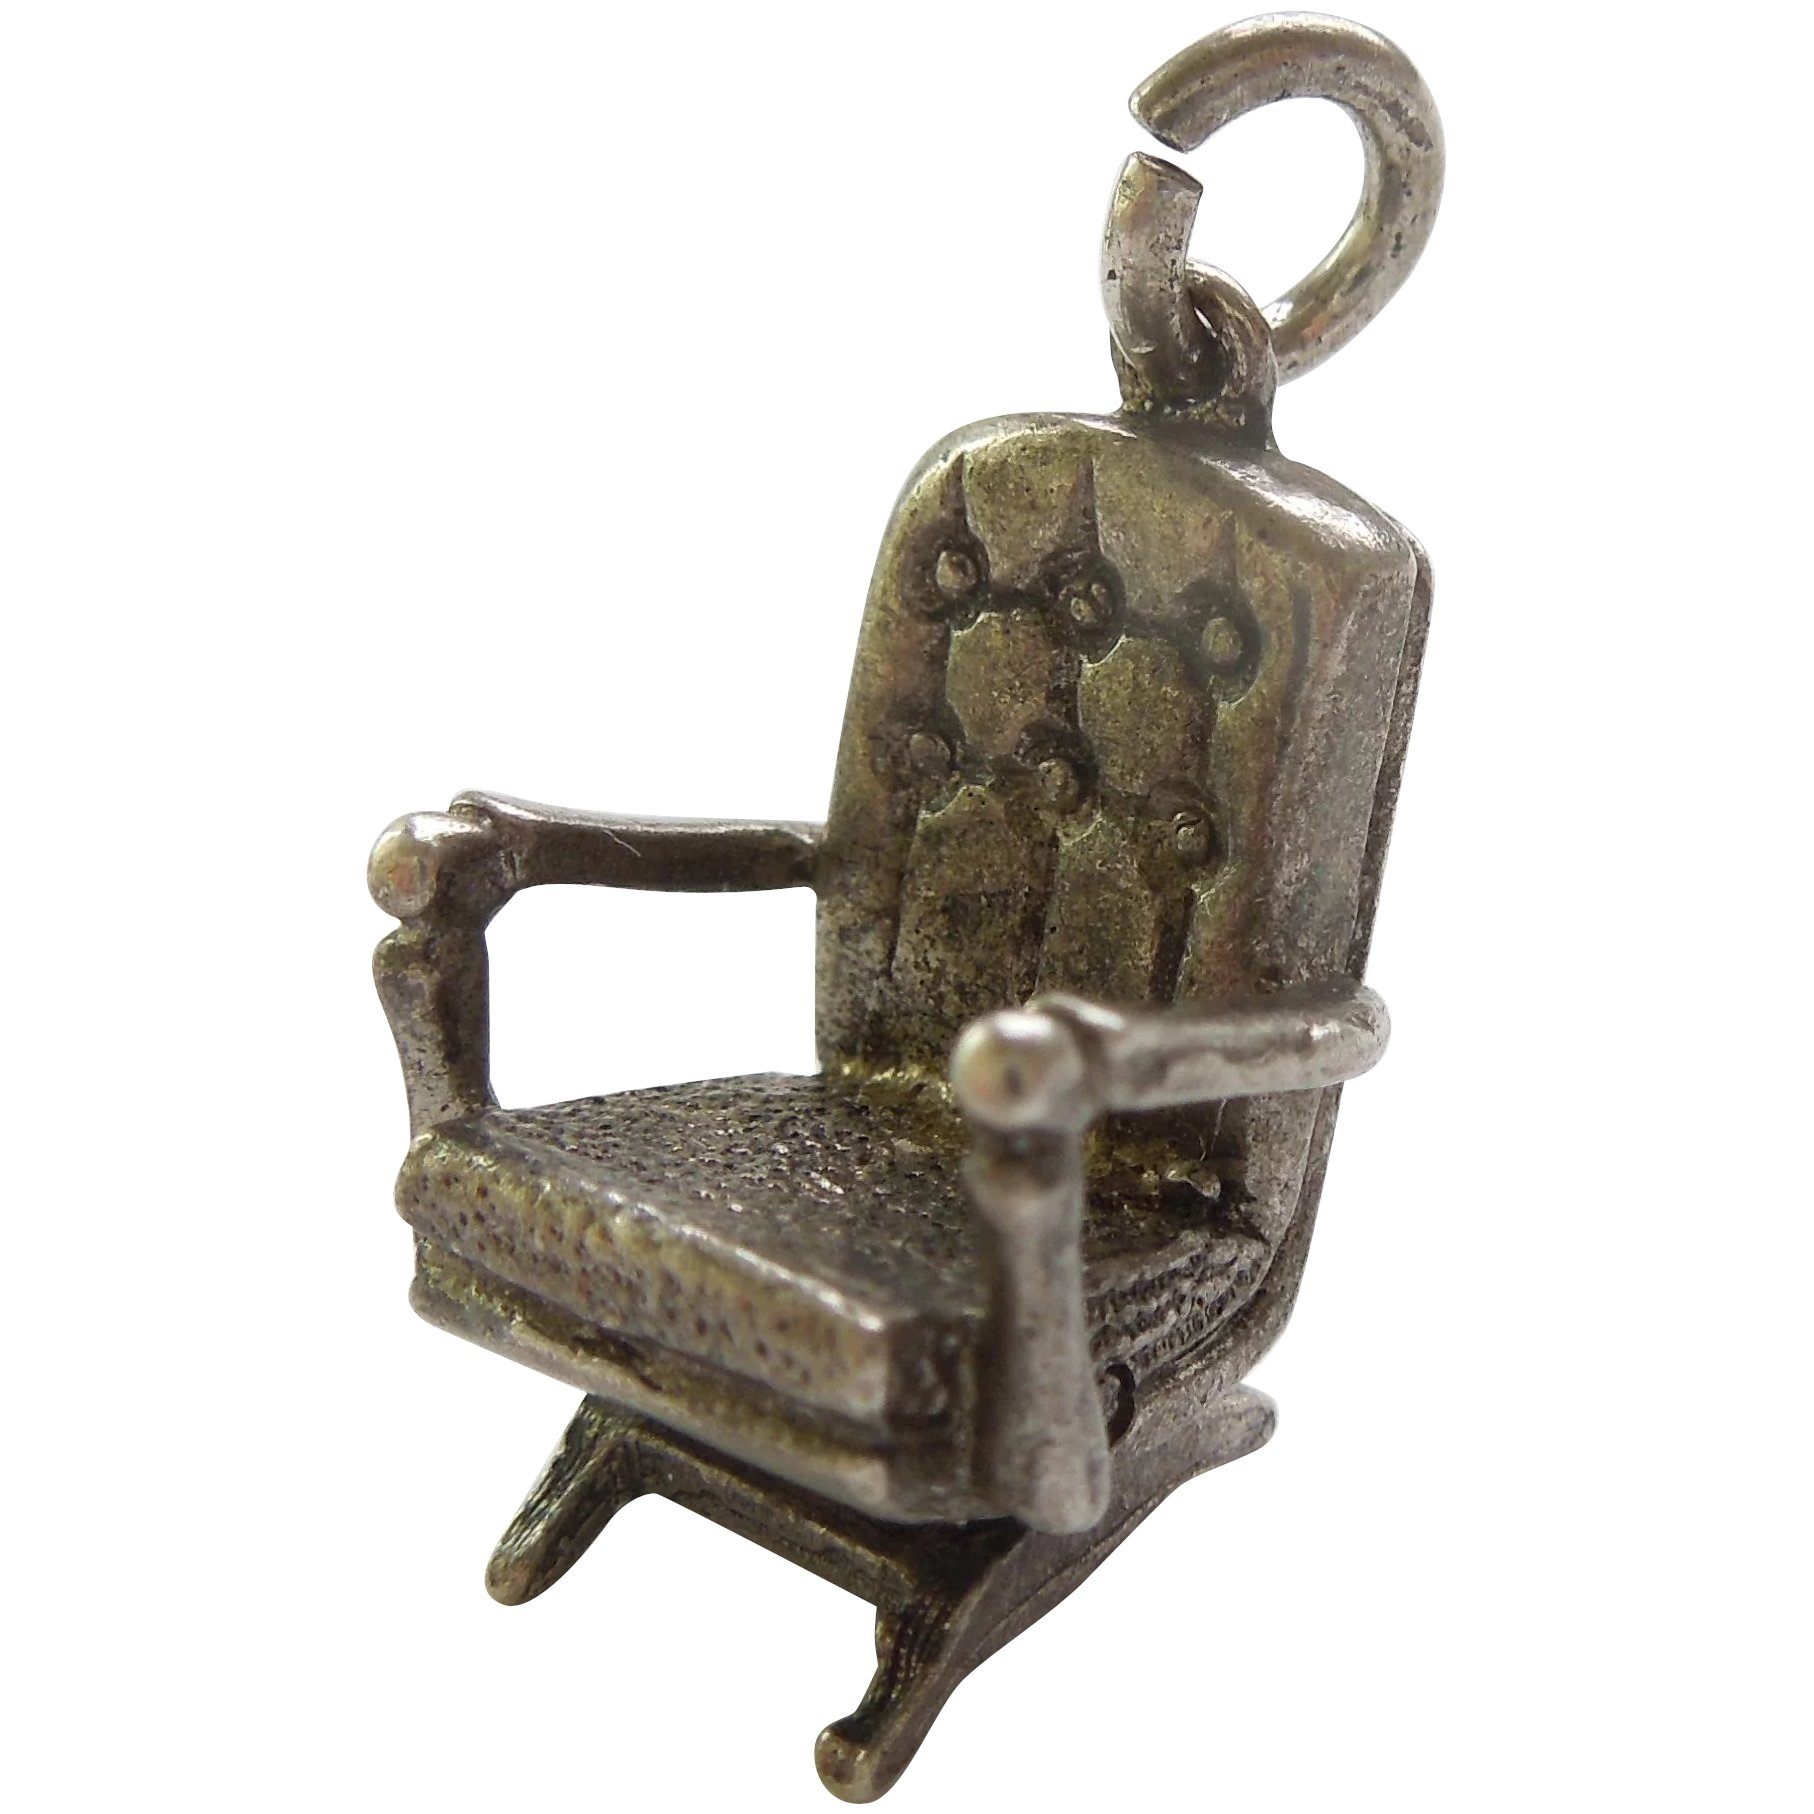 Strange Upholstered Tufted Rocking Chair Moving Platform Rocker Sterling Silver Charm Gmtry Best Dining Table And Chair Ideas Images Gmtryco